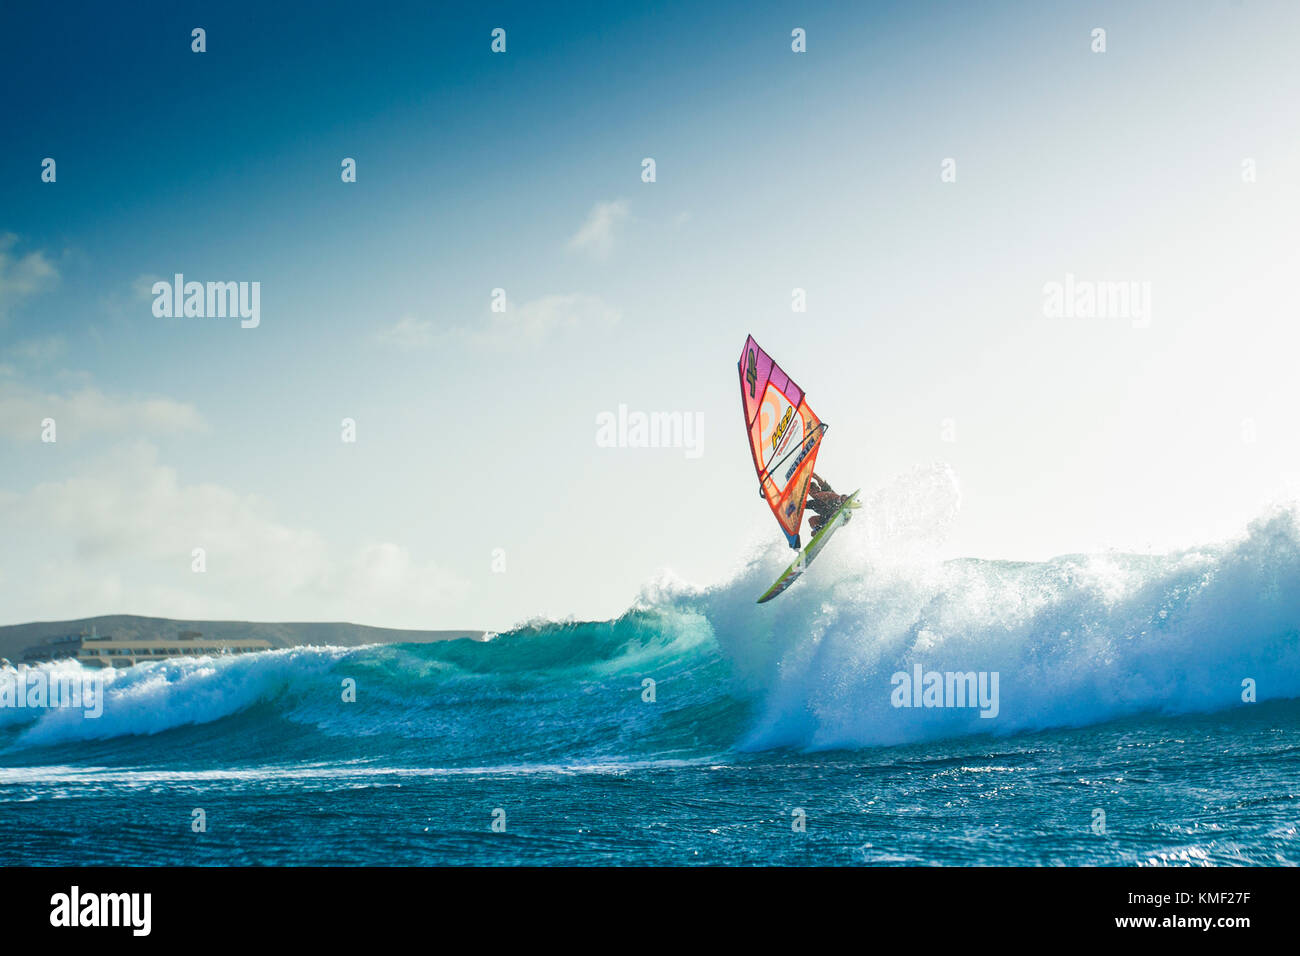 Windsurfing In The Canary Islands October